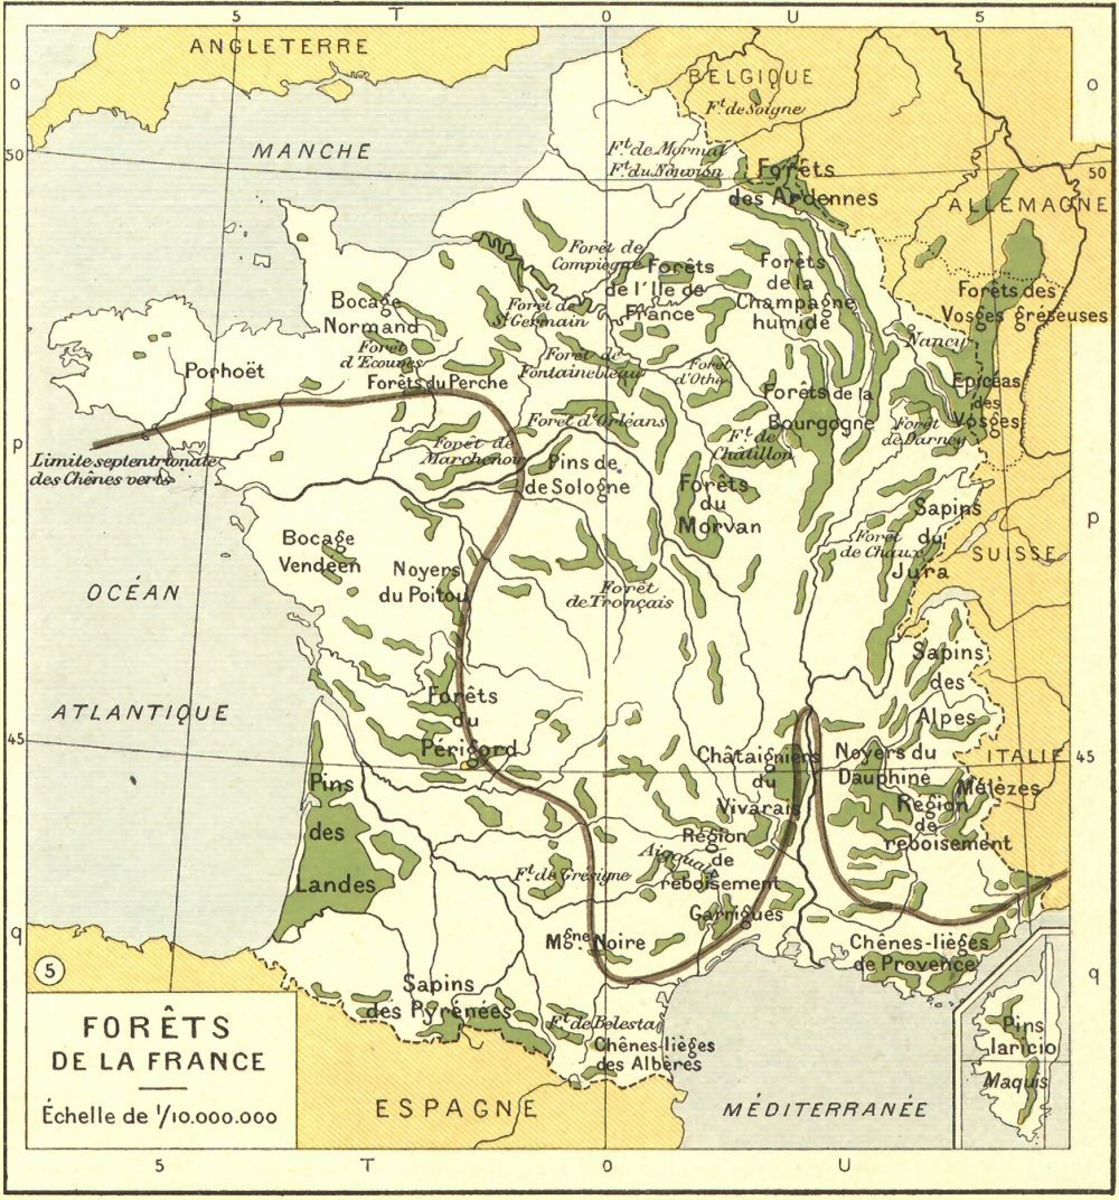 French forests, shown here during the early Third Republic